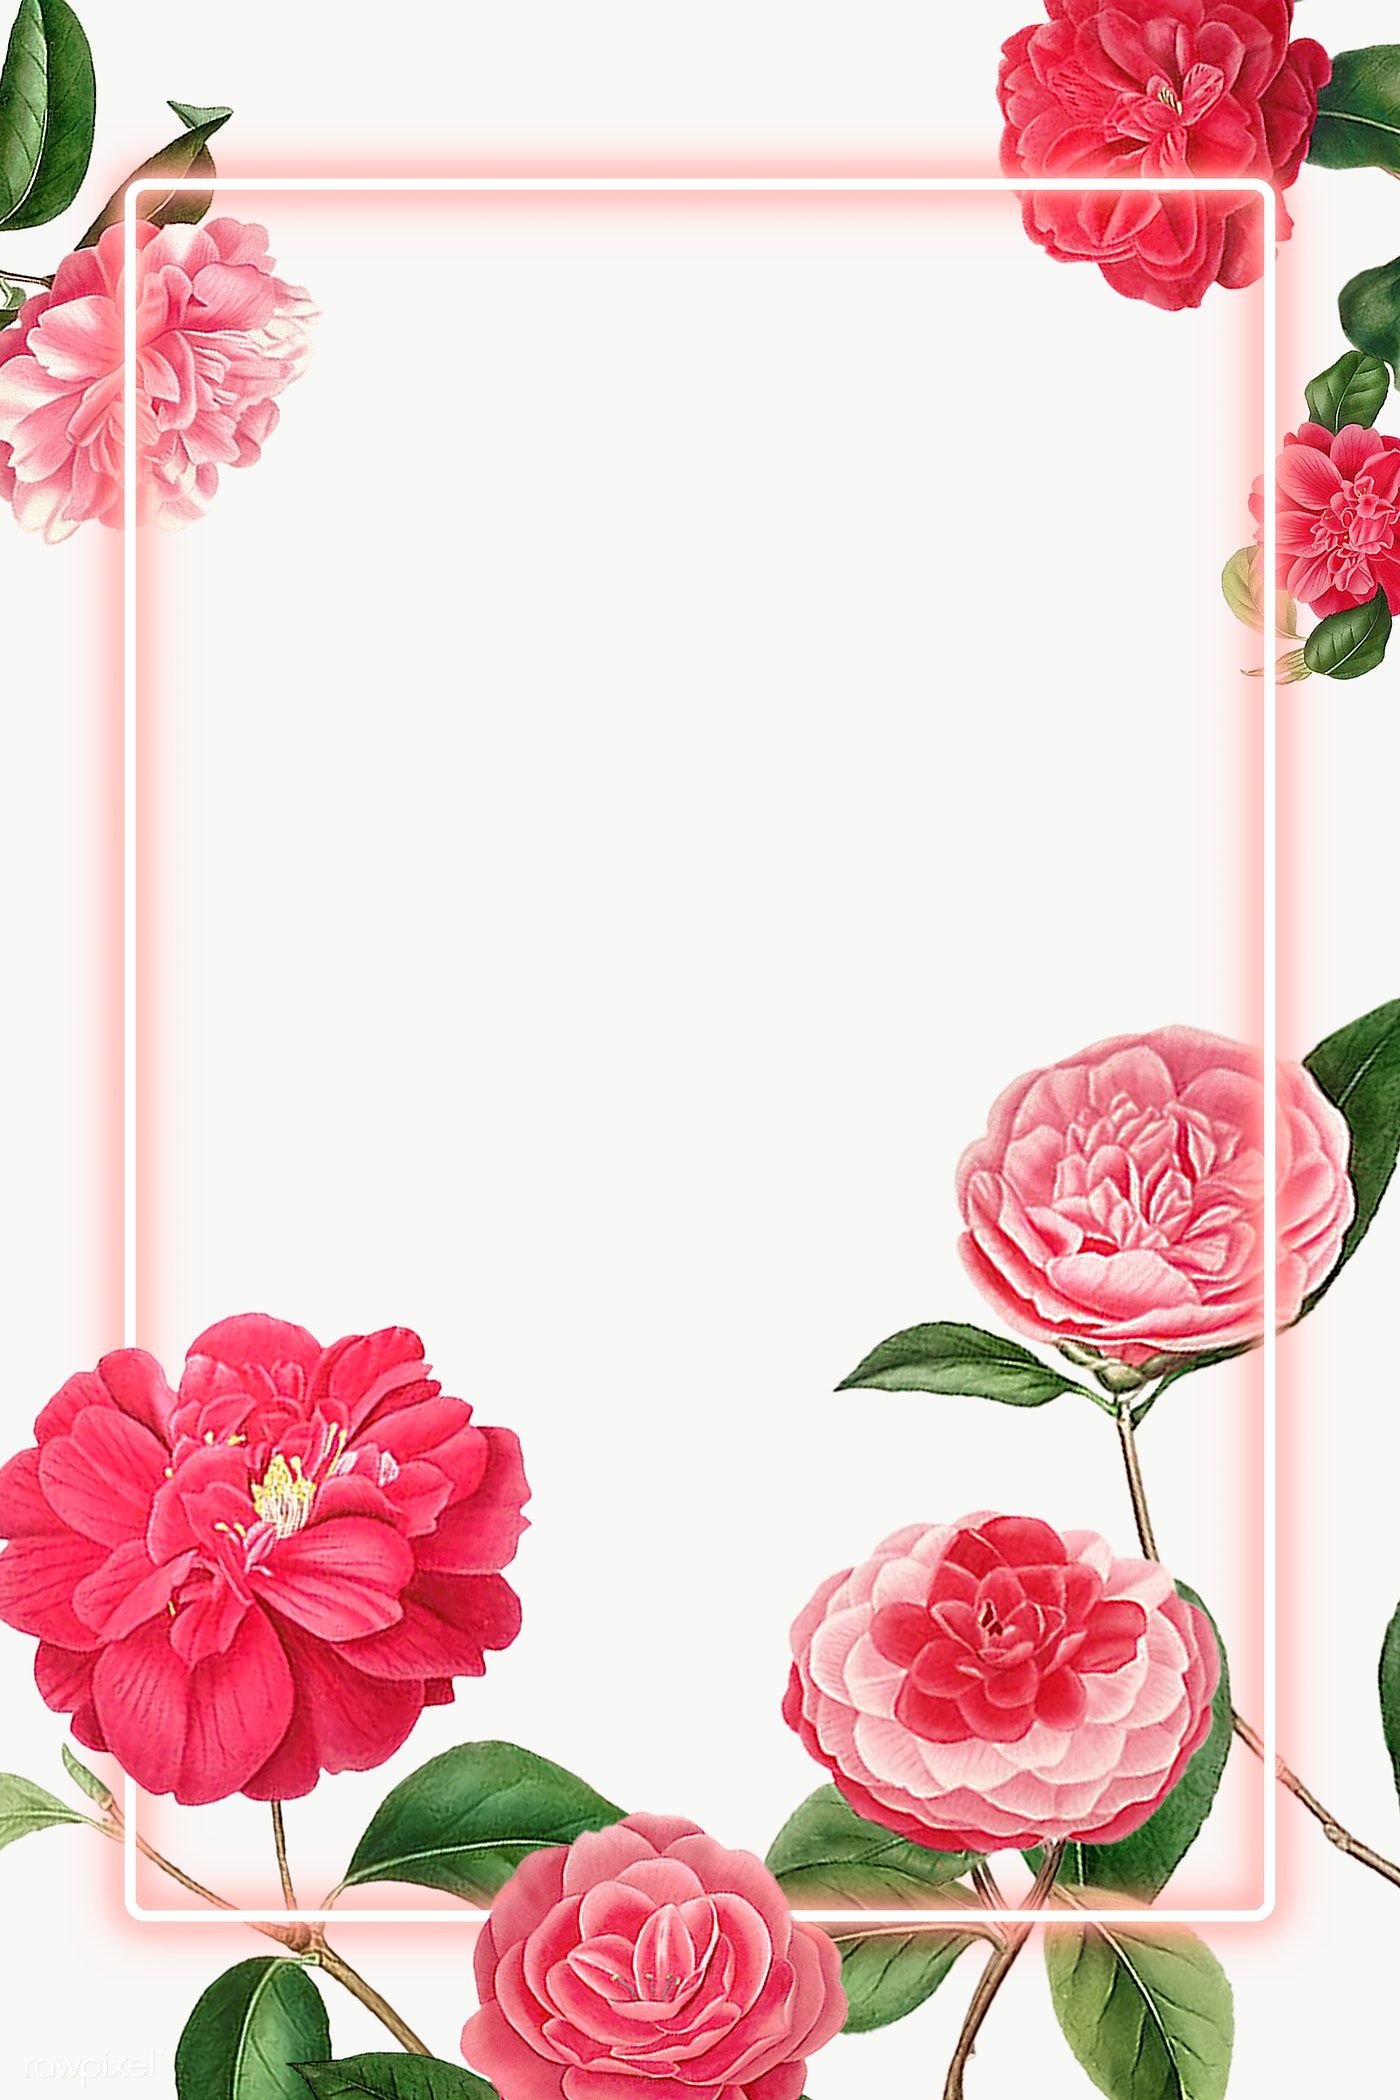 Download Premium Png Of Red And Pink Camellia Flower Patterned Blank Frame In 2020 Flower Frame Png Flower Illustration Flower Frame